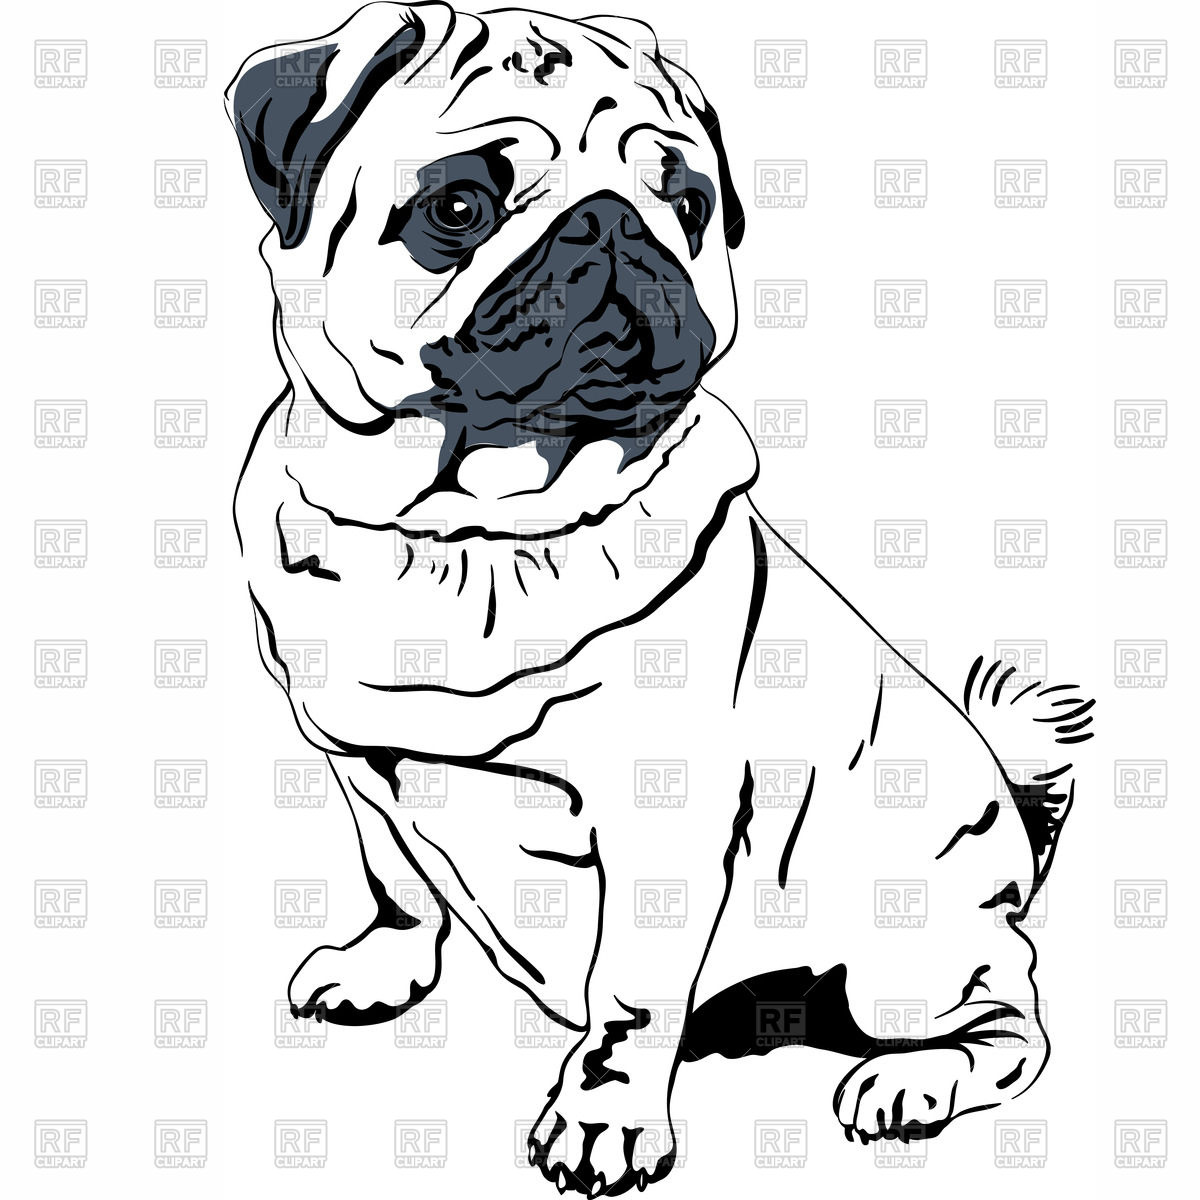 1200x1200 Sketch Of Sitting Dog Of Pug Breed Vector Image Vector Artwork